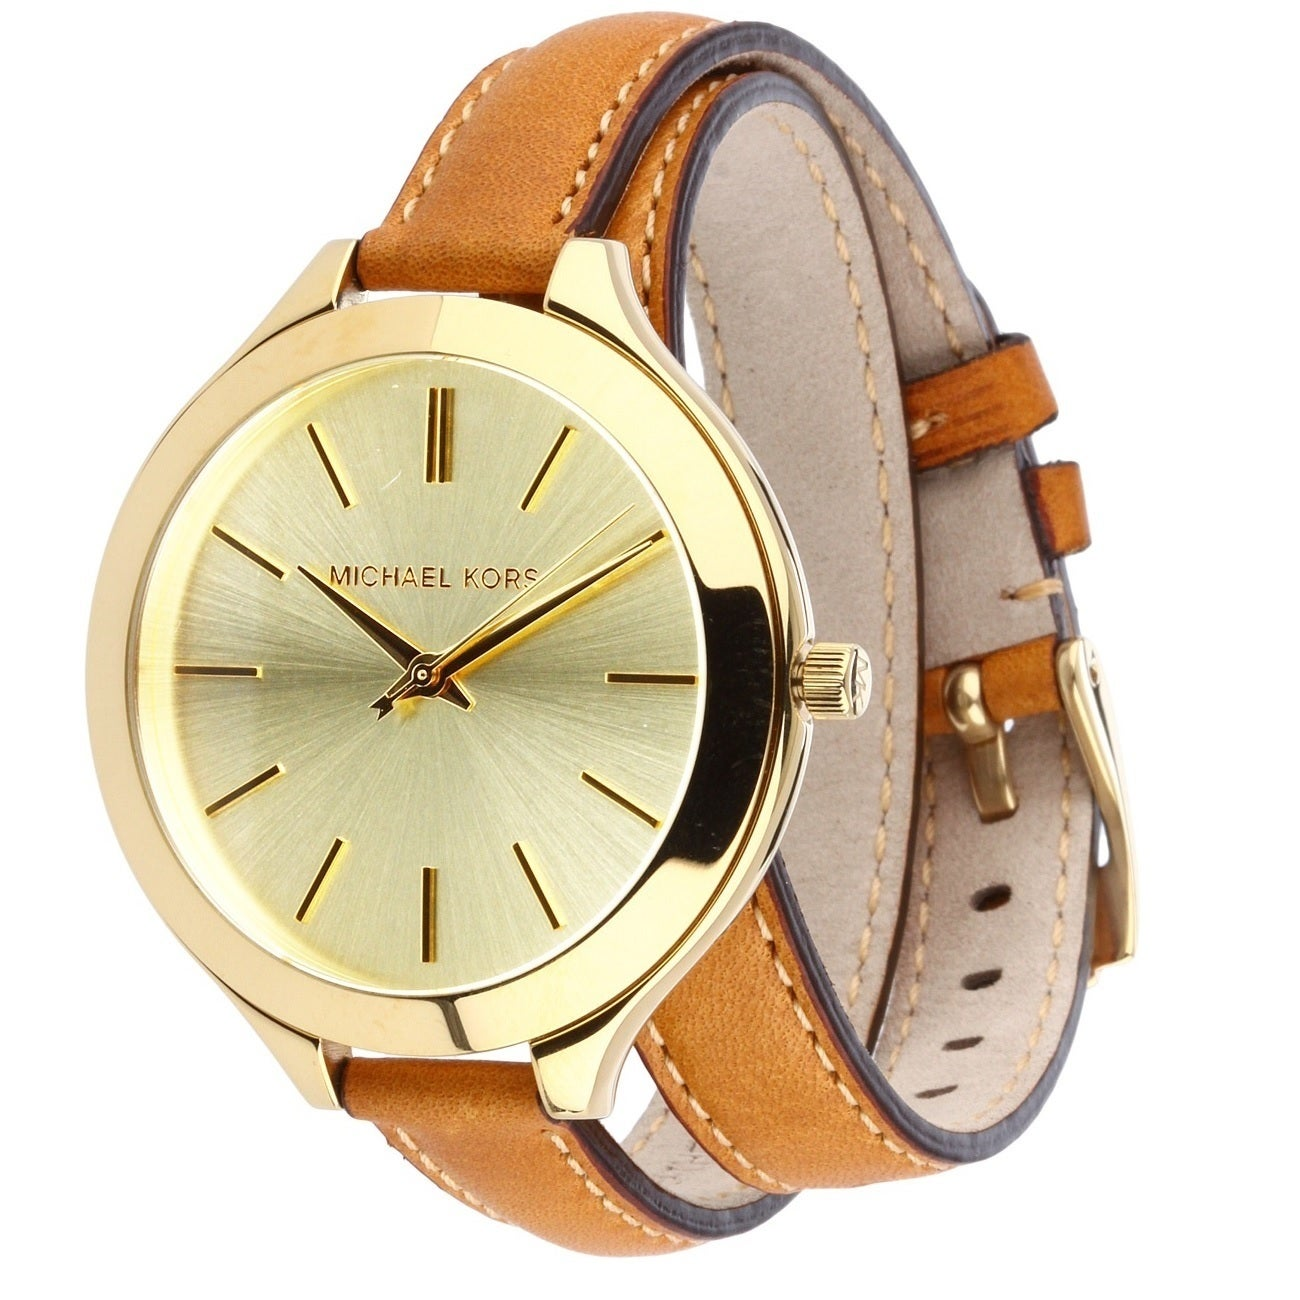 866bb0f4e4fe Shop Michael Kors Women s MK2256  Runway  Slim Double Leather Watch - Gold  - Free Shipping Today - Overstock - 8685344